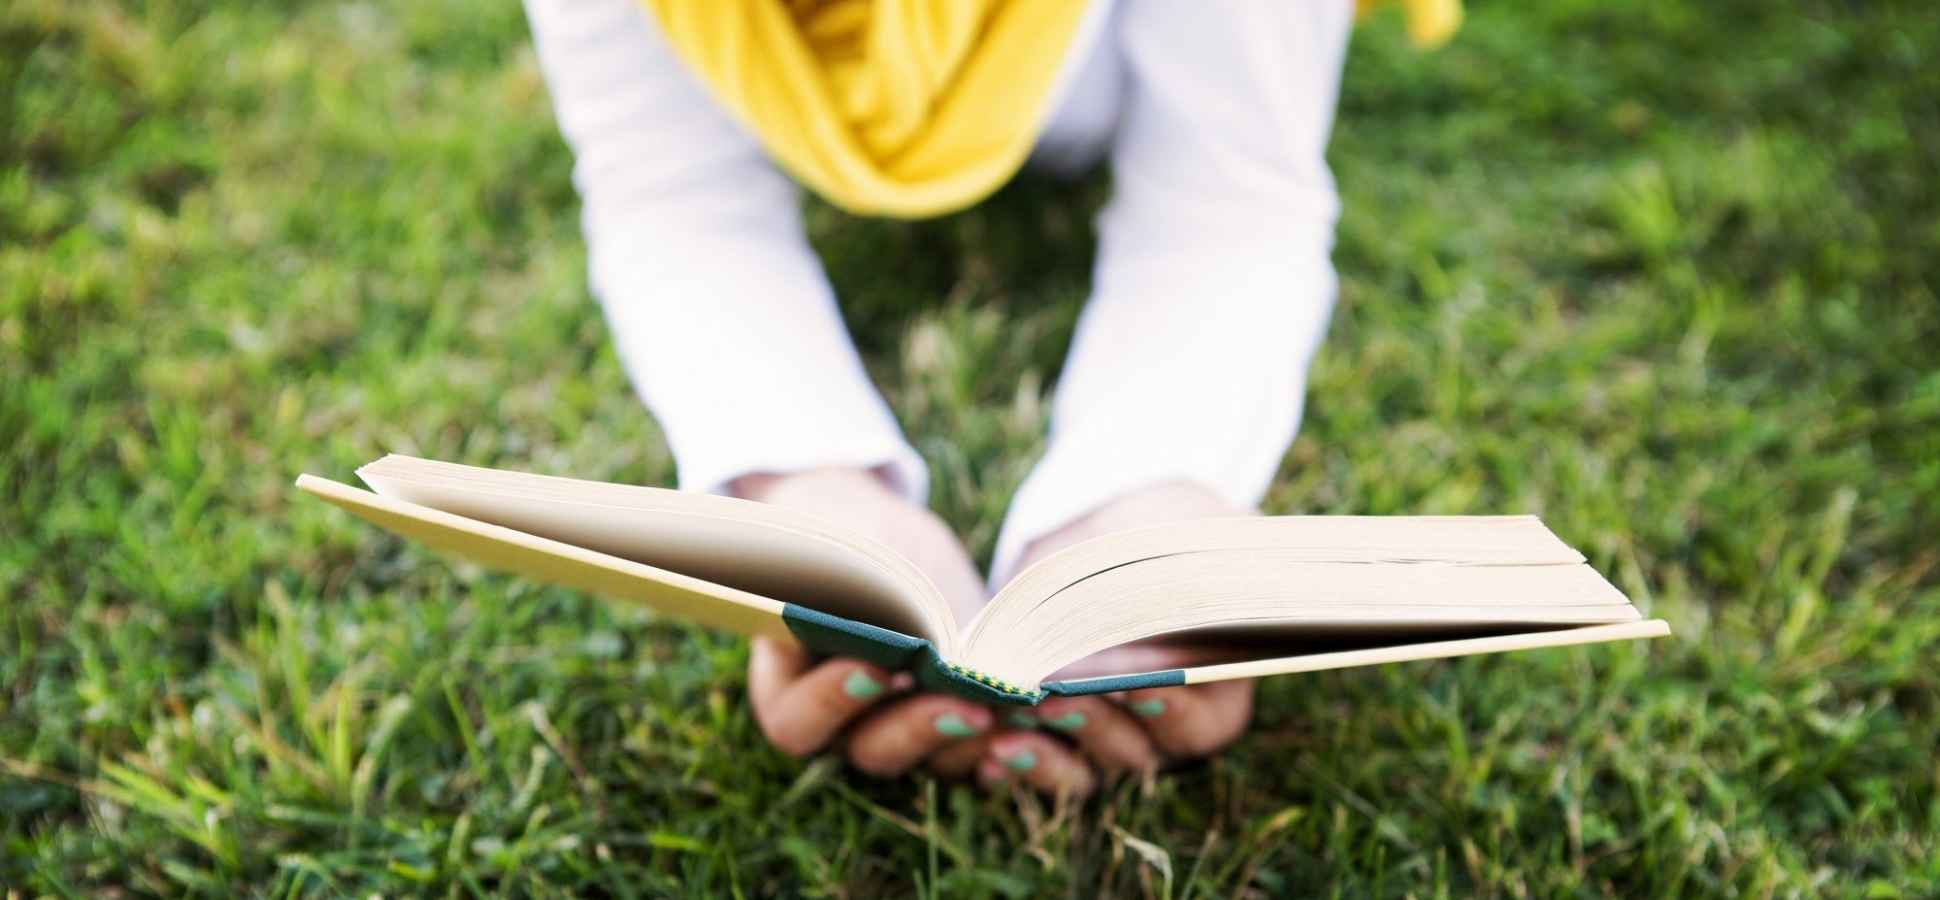 10 Books That Can Change Your Life in One Long Weekend